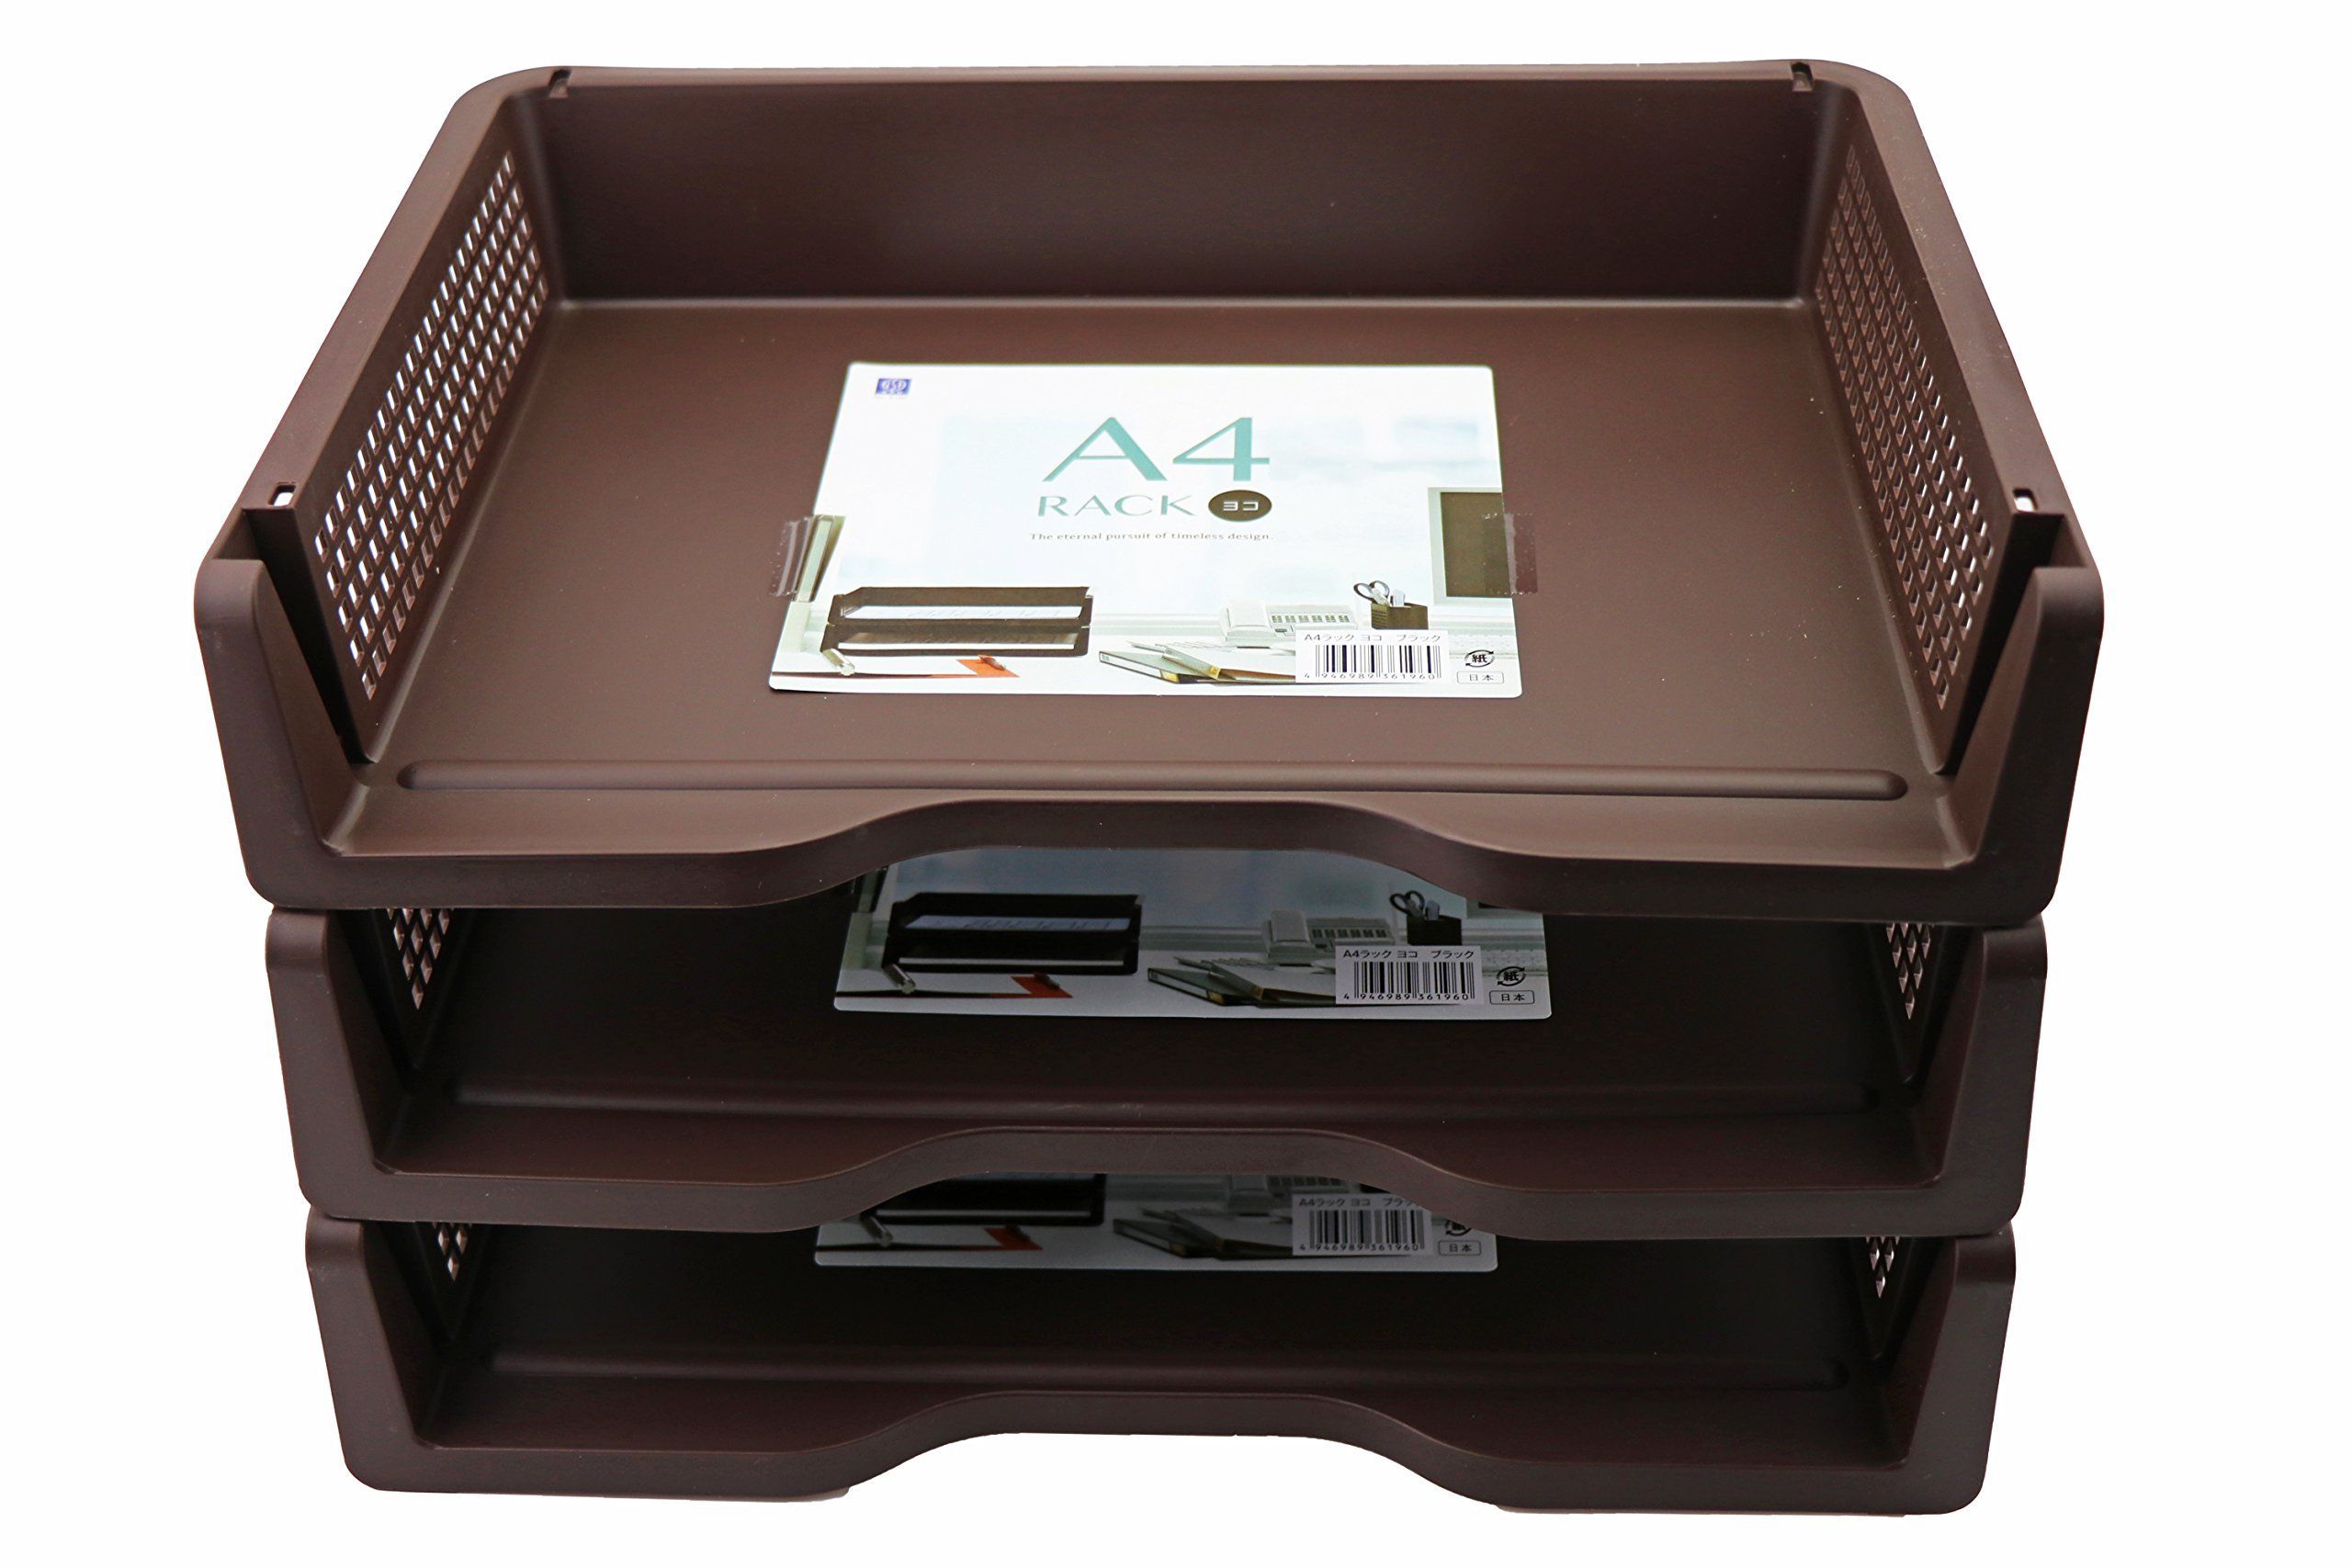 Set of 3 Stackable Office A4 File Document Tray Case Rack by SweetDays (Brown)